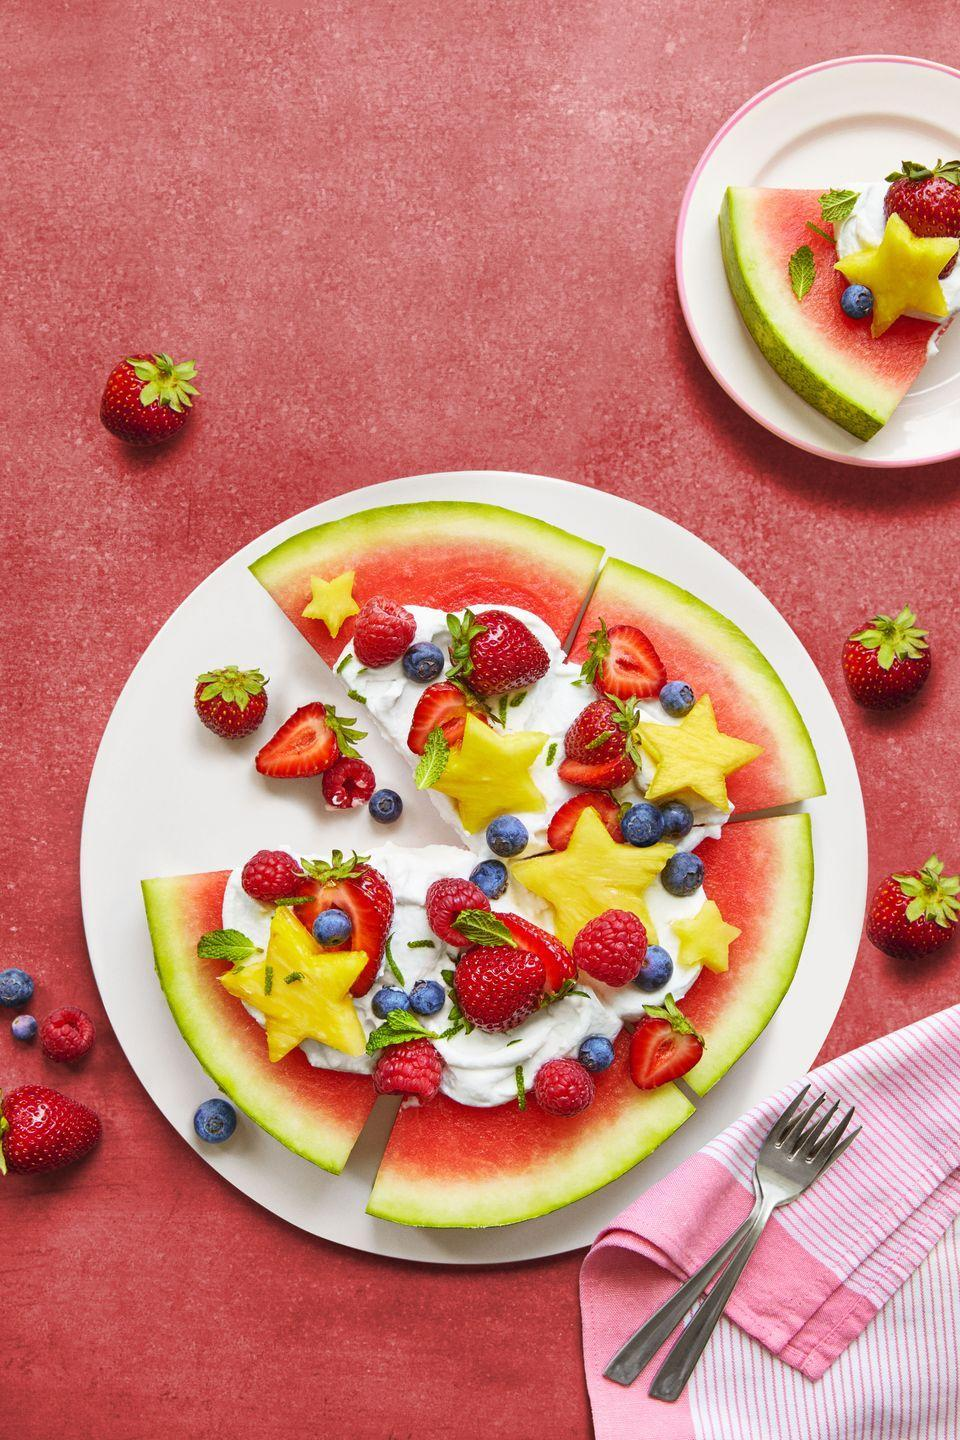 <p>This healthy berry dessert recipe is so simple to make — just top a round of watermelon with whipped cream, strawberries and blueberries, then slice into pizza-shaped pieces.</p>